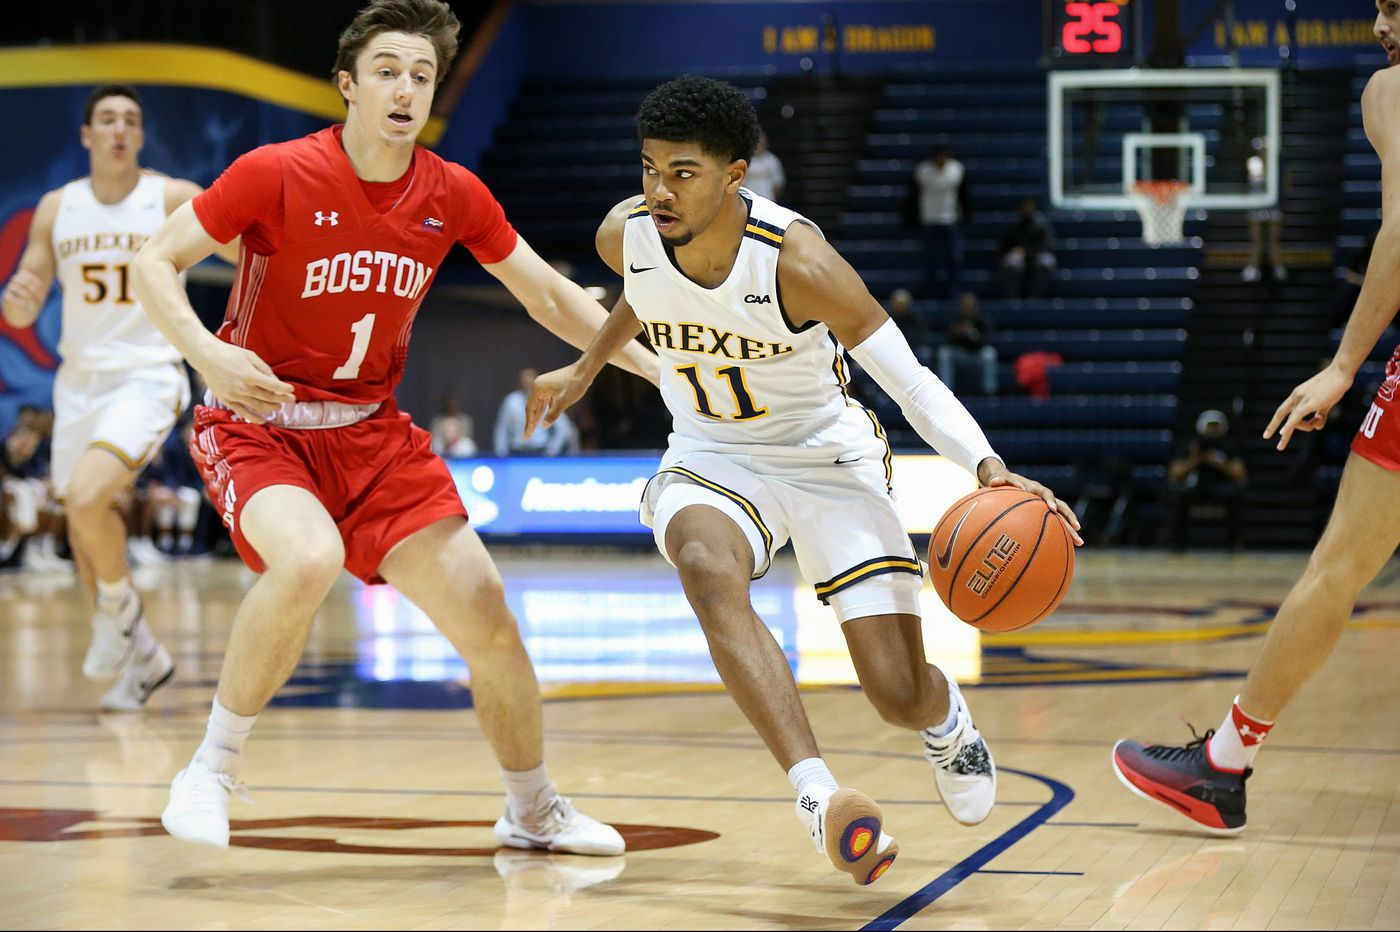 Camren Wynter leads Drexel over Boston U.